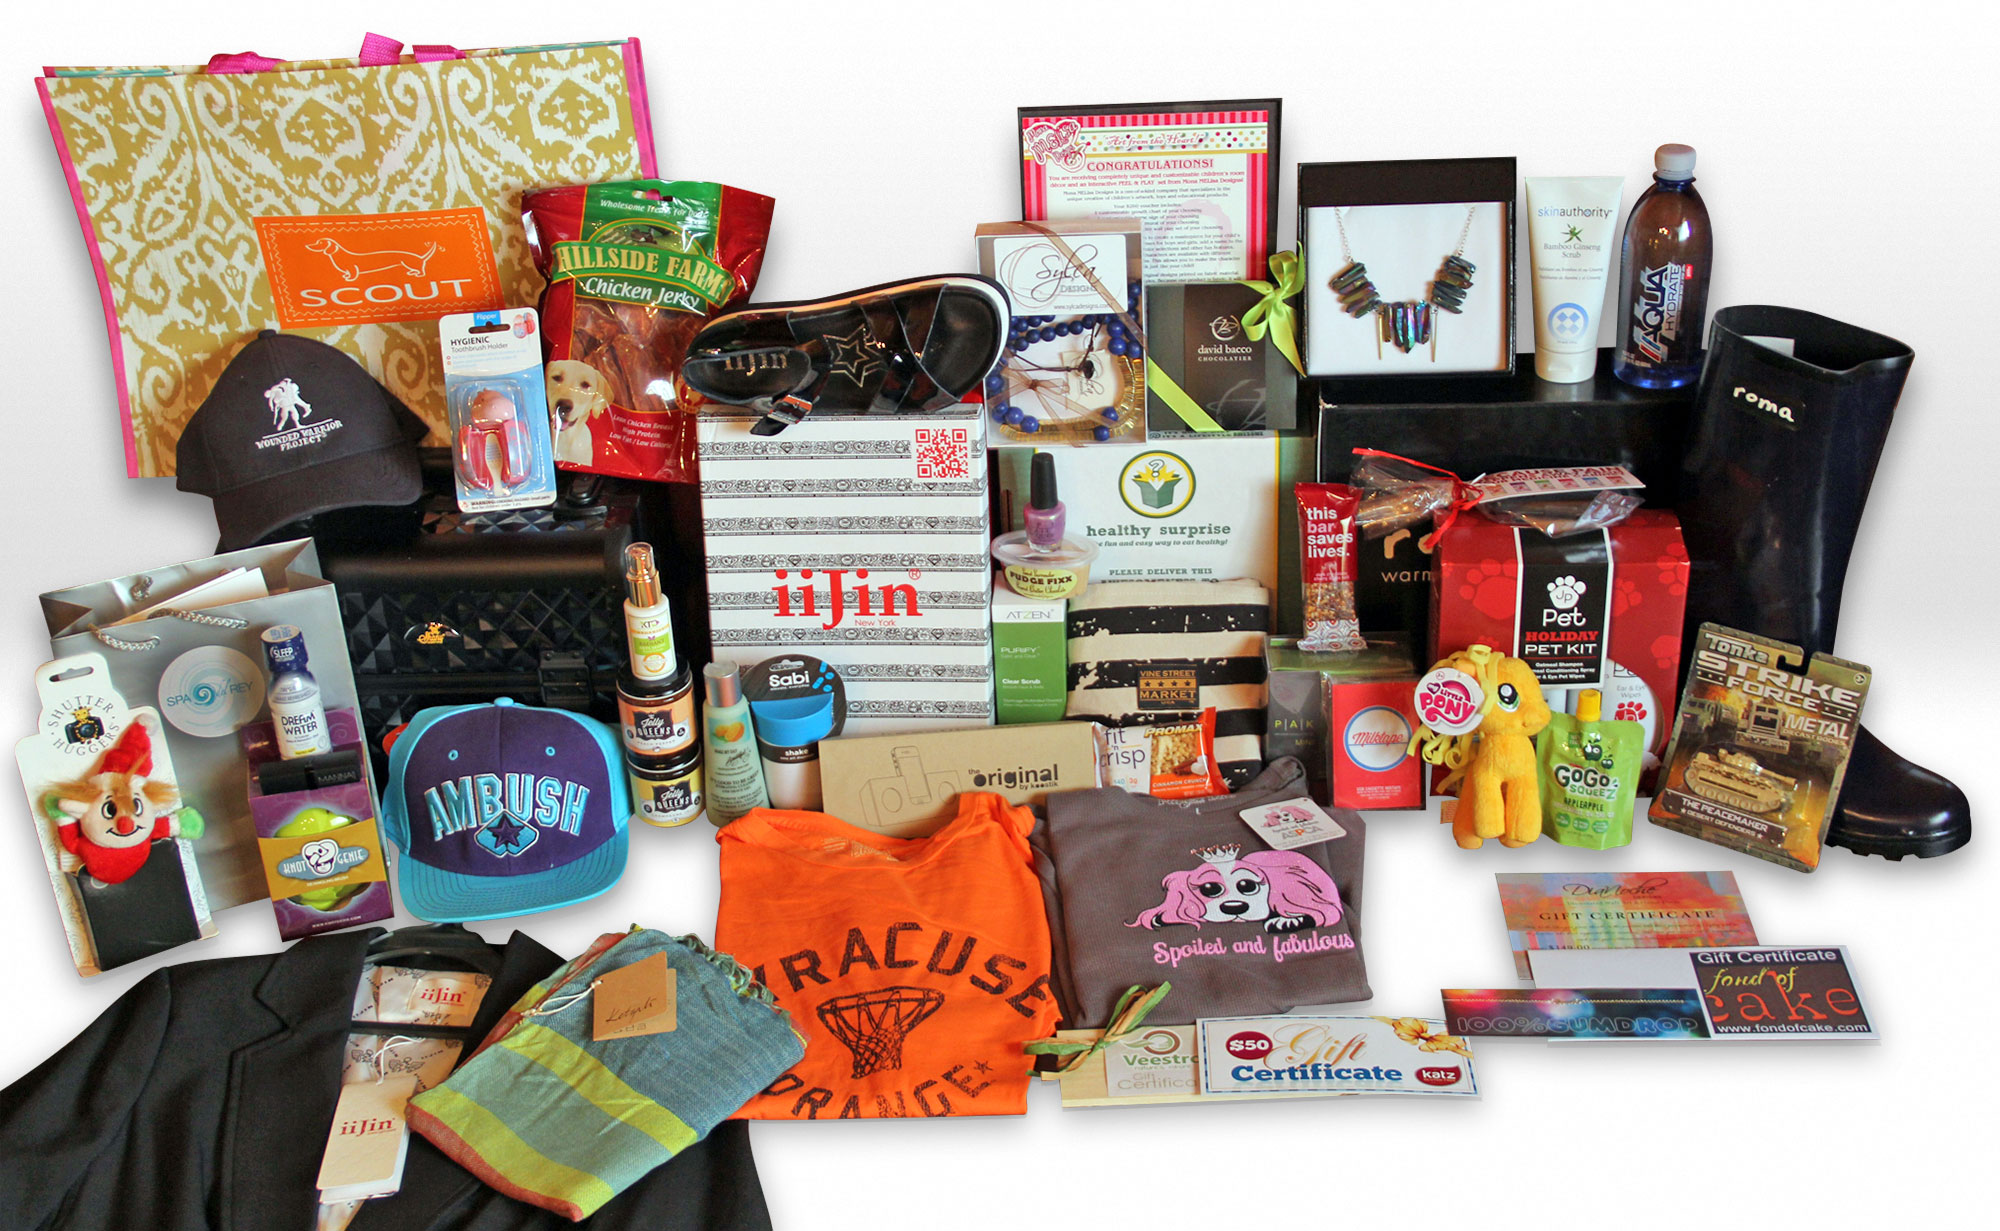 This Wounded Warrior Project Emmys gift basket could be yours if you enter our giveaway!